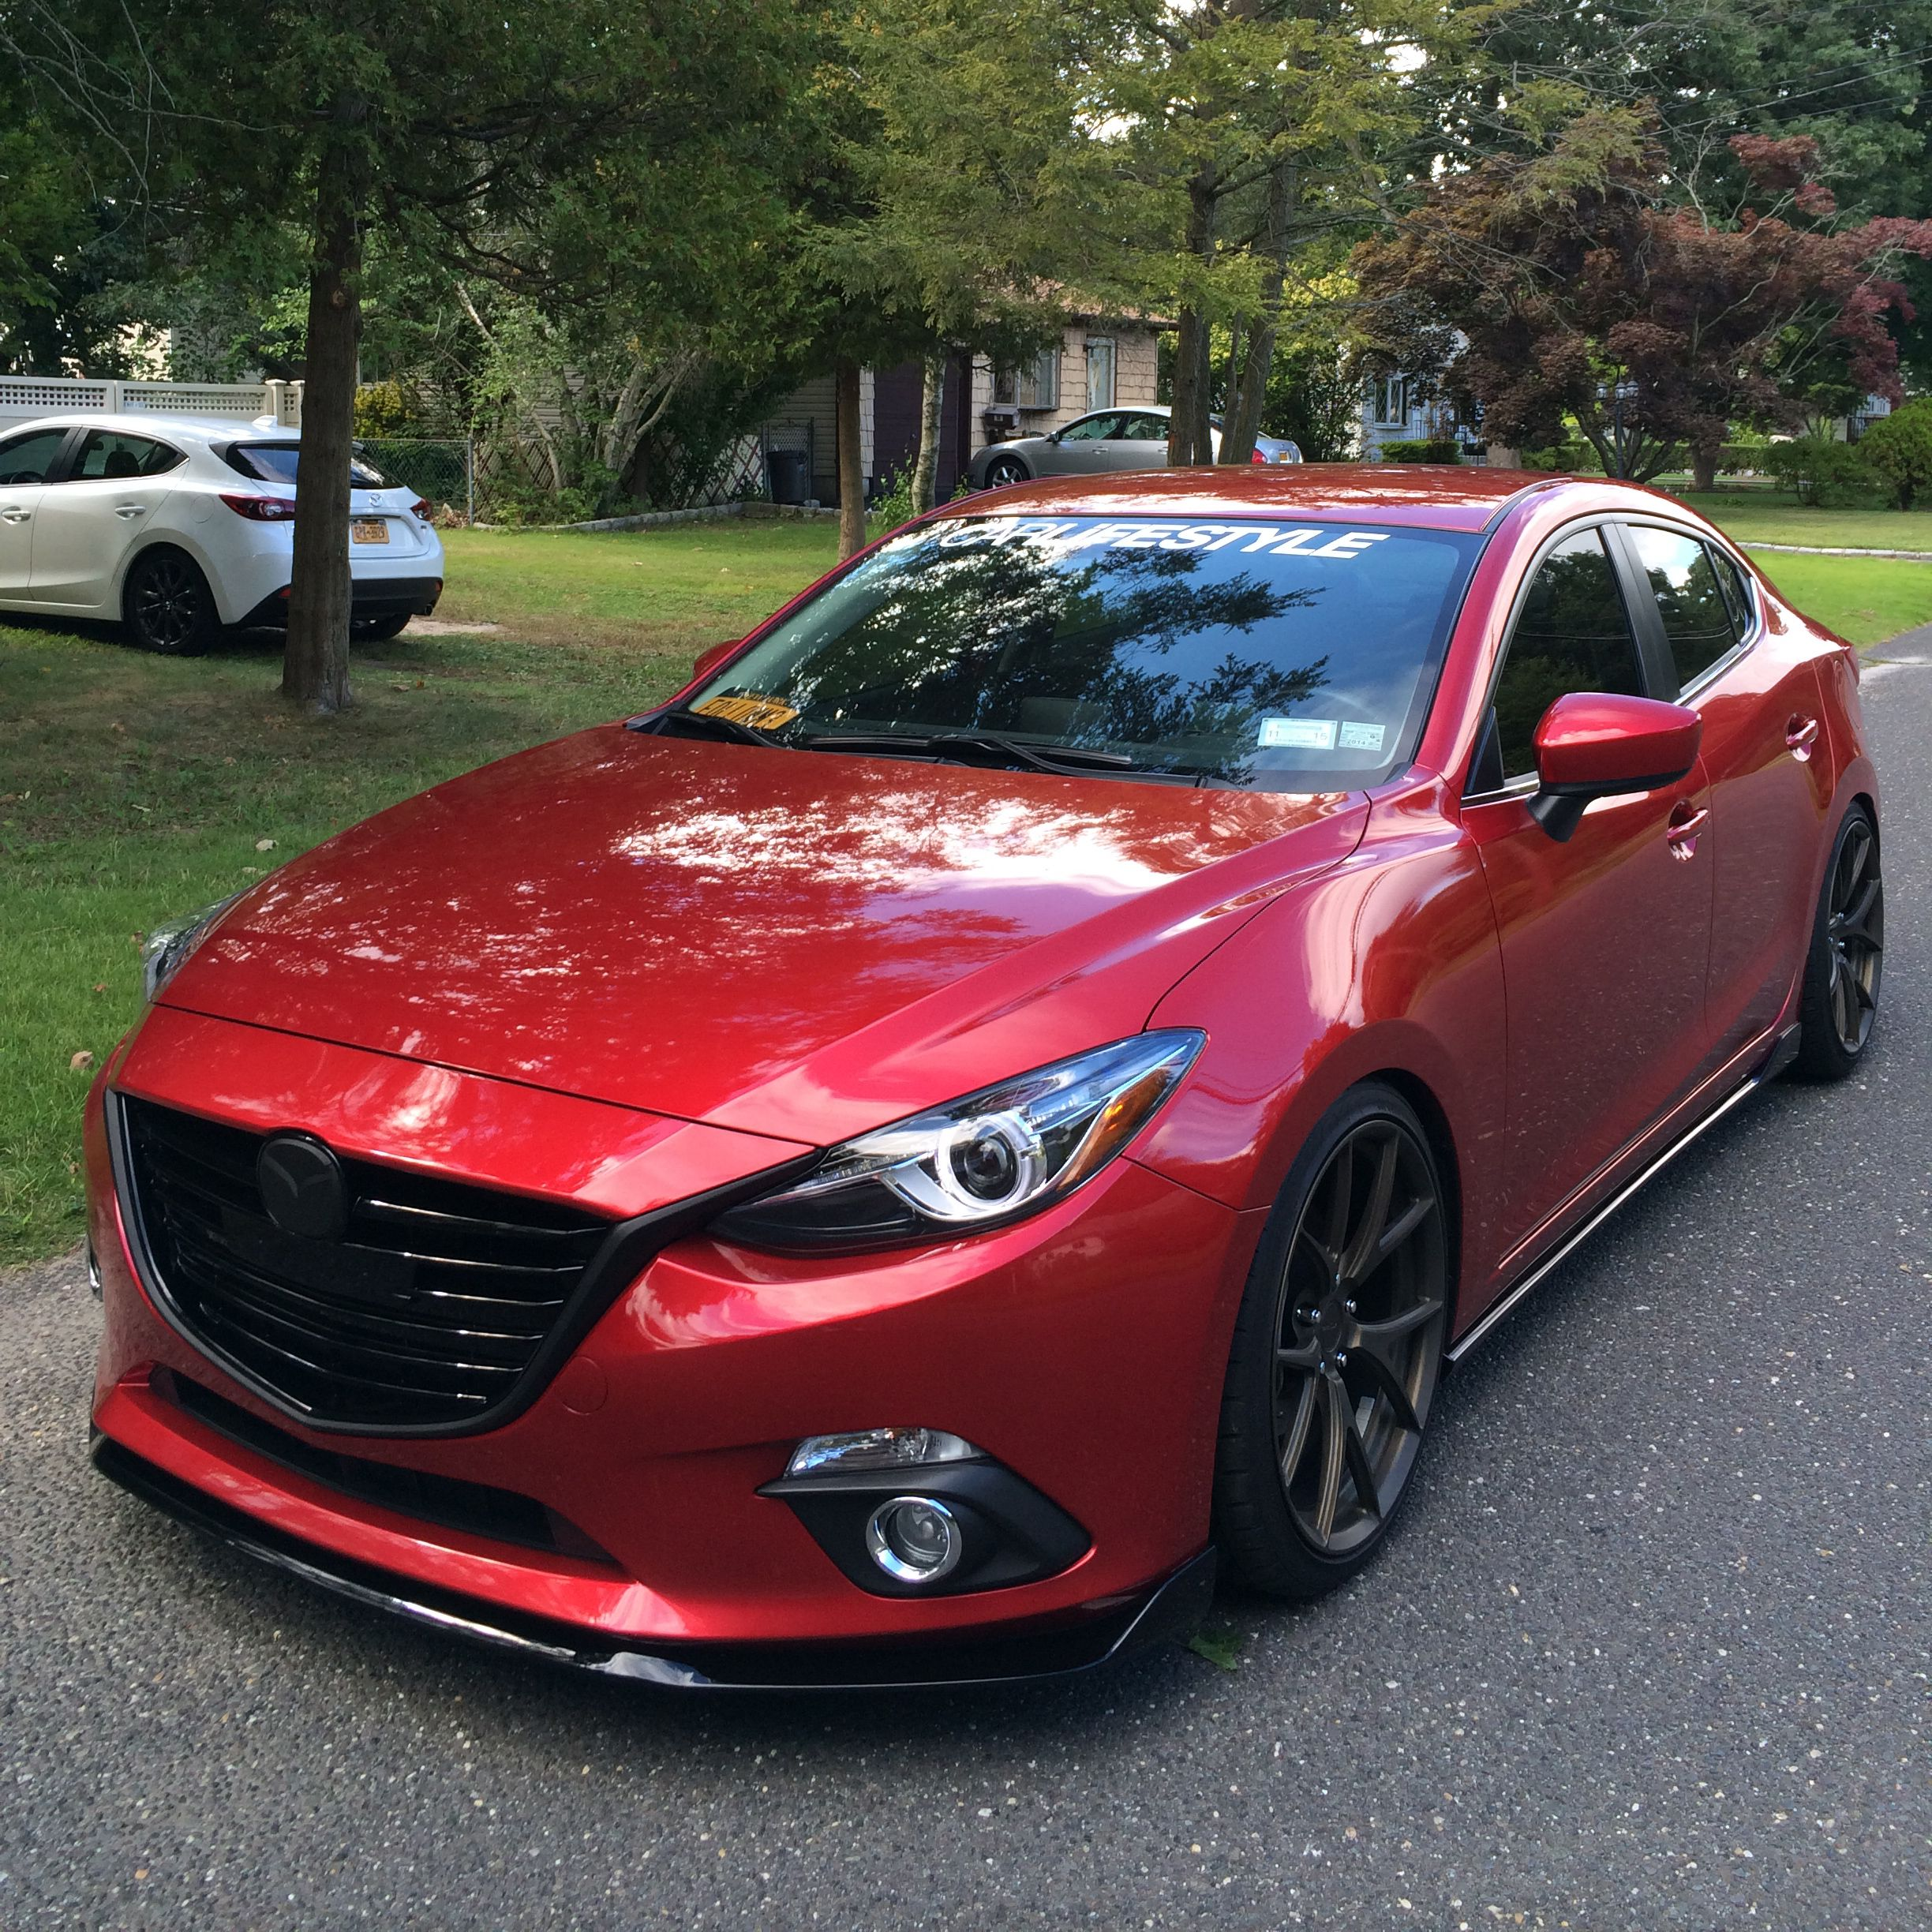 2004 To 2016 Mazda 3 Forum And Mazdaspeed 3 Forums View Single